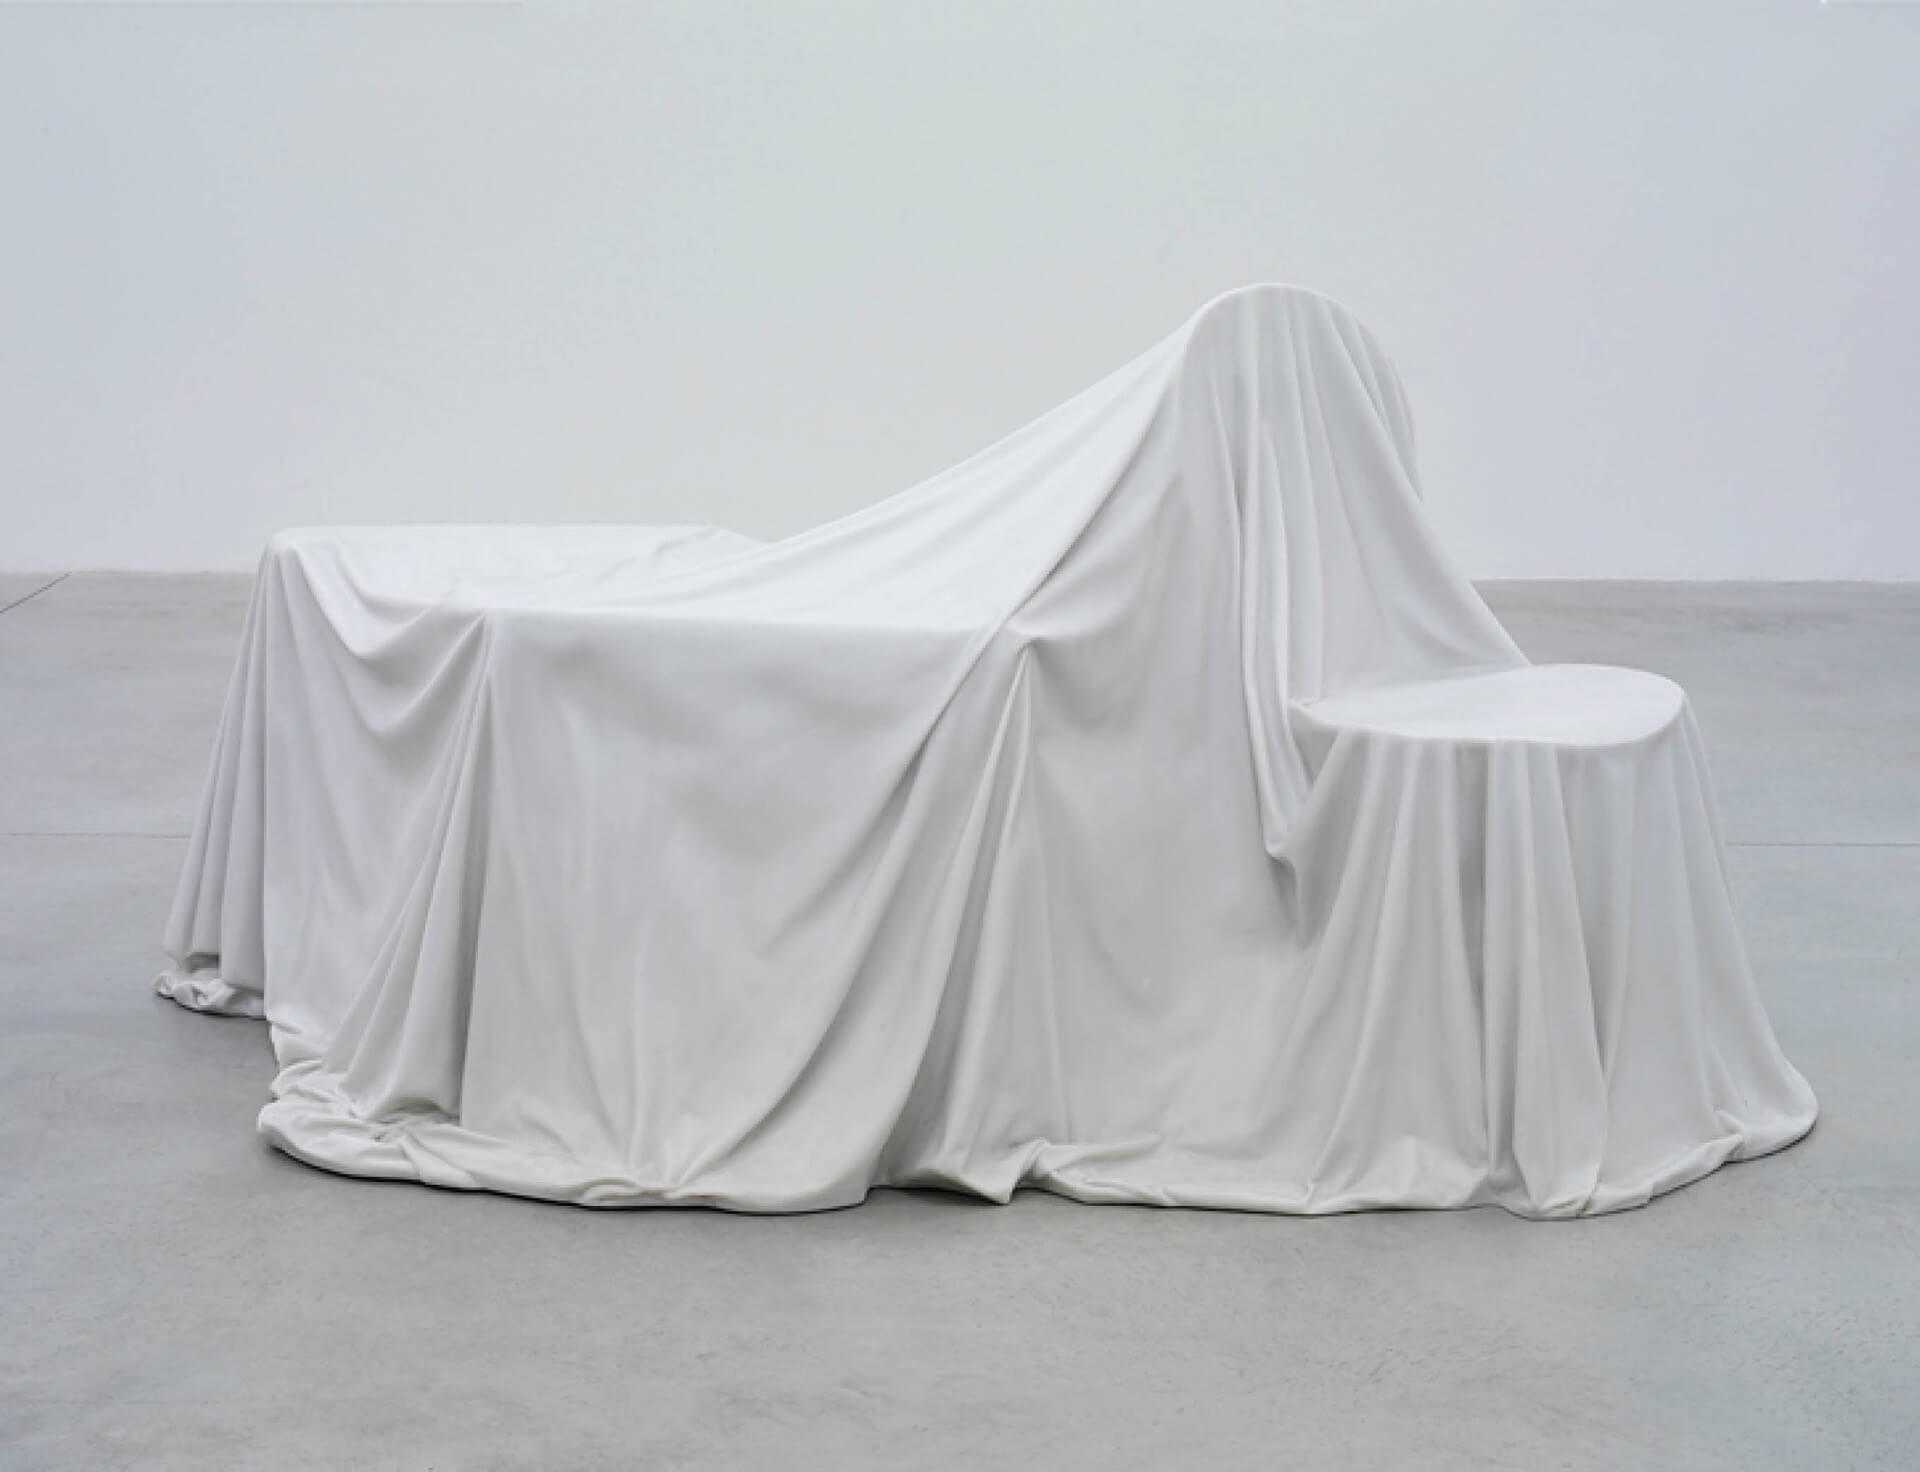 Ryan Gander: 'Make every show like it's your last'